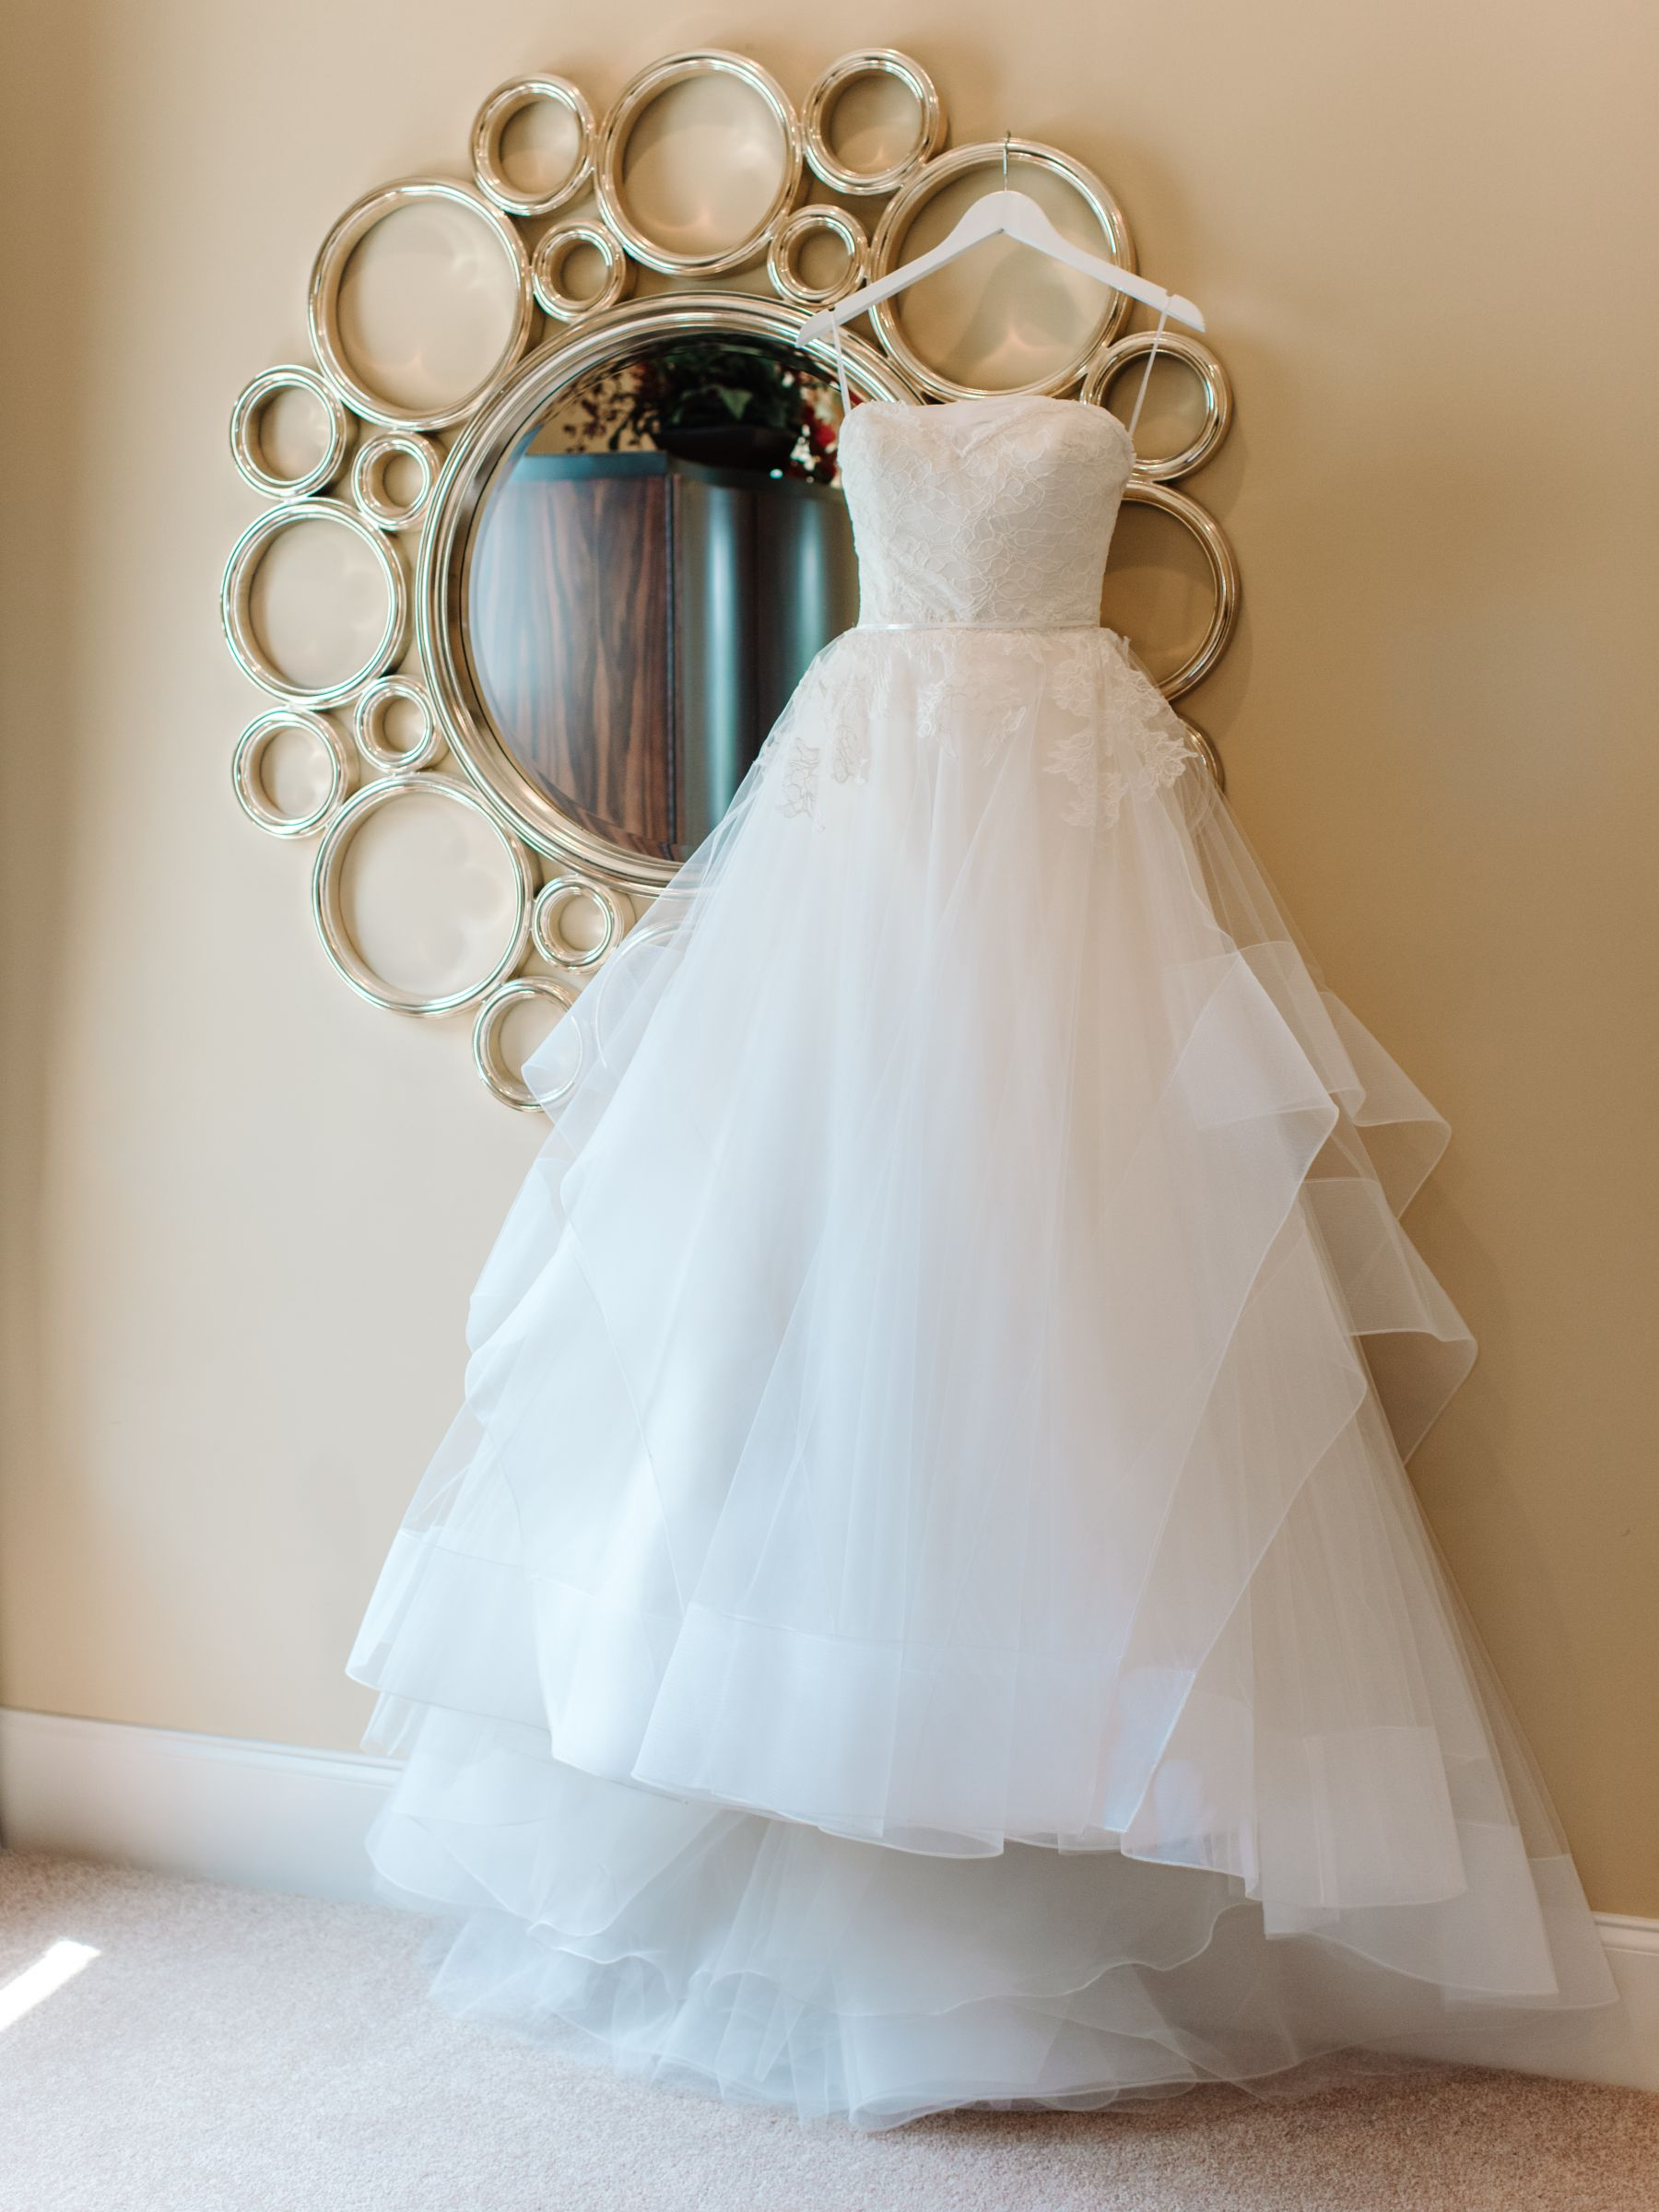 beautiful strapless wedding gown with tulle hanging by a mirror